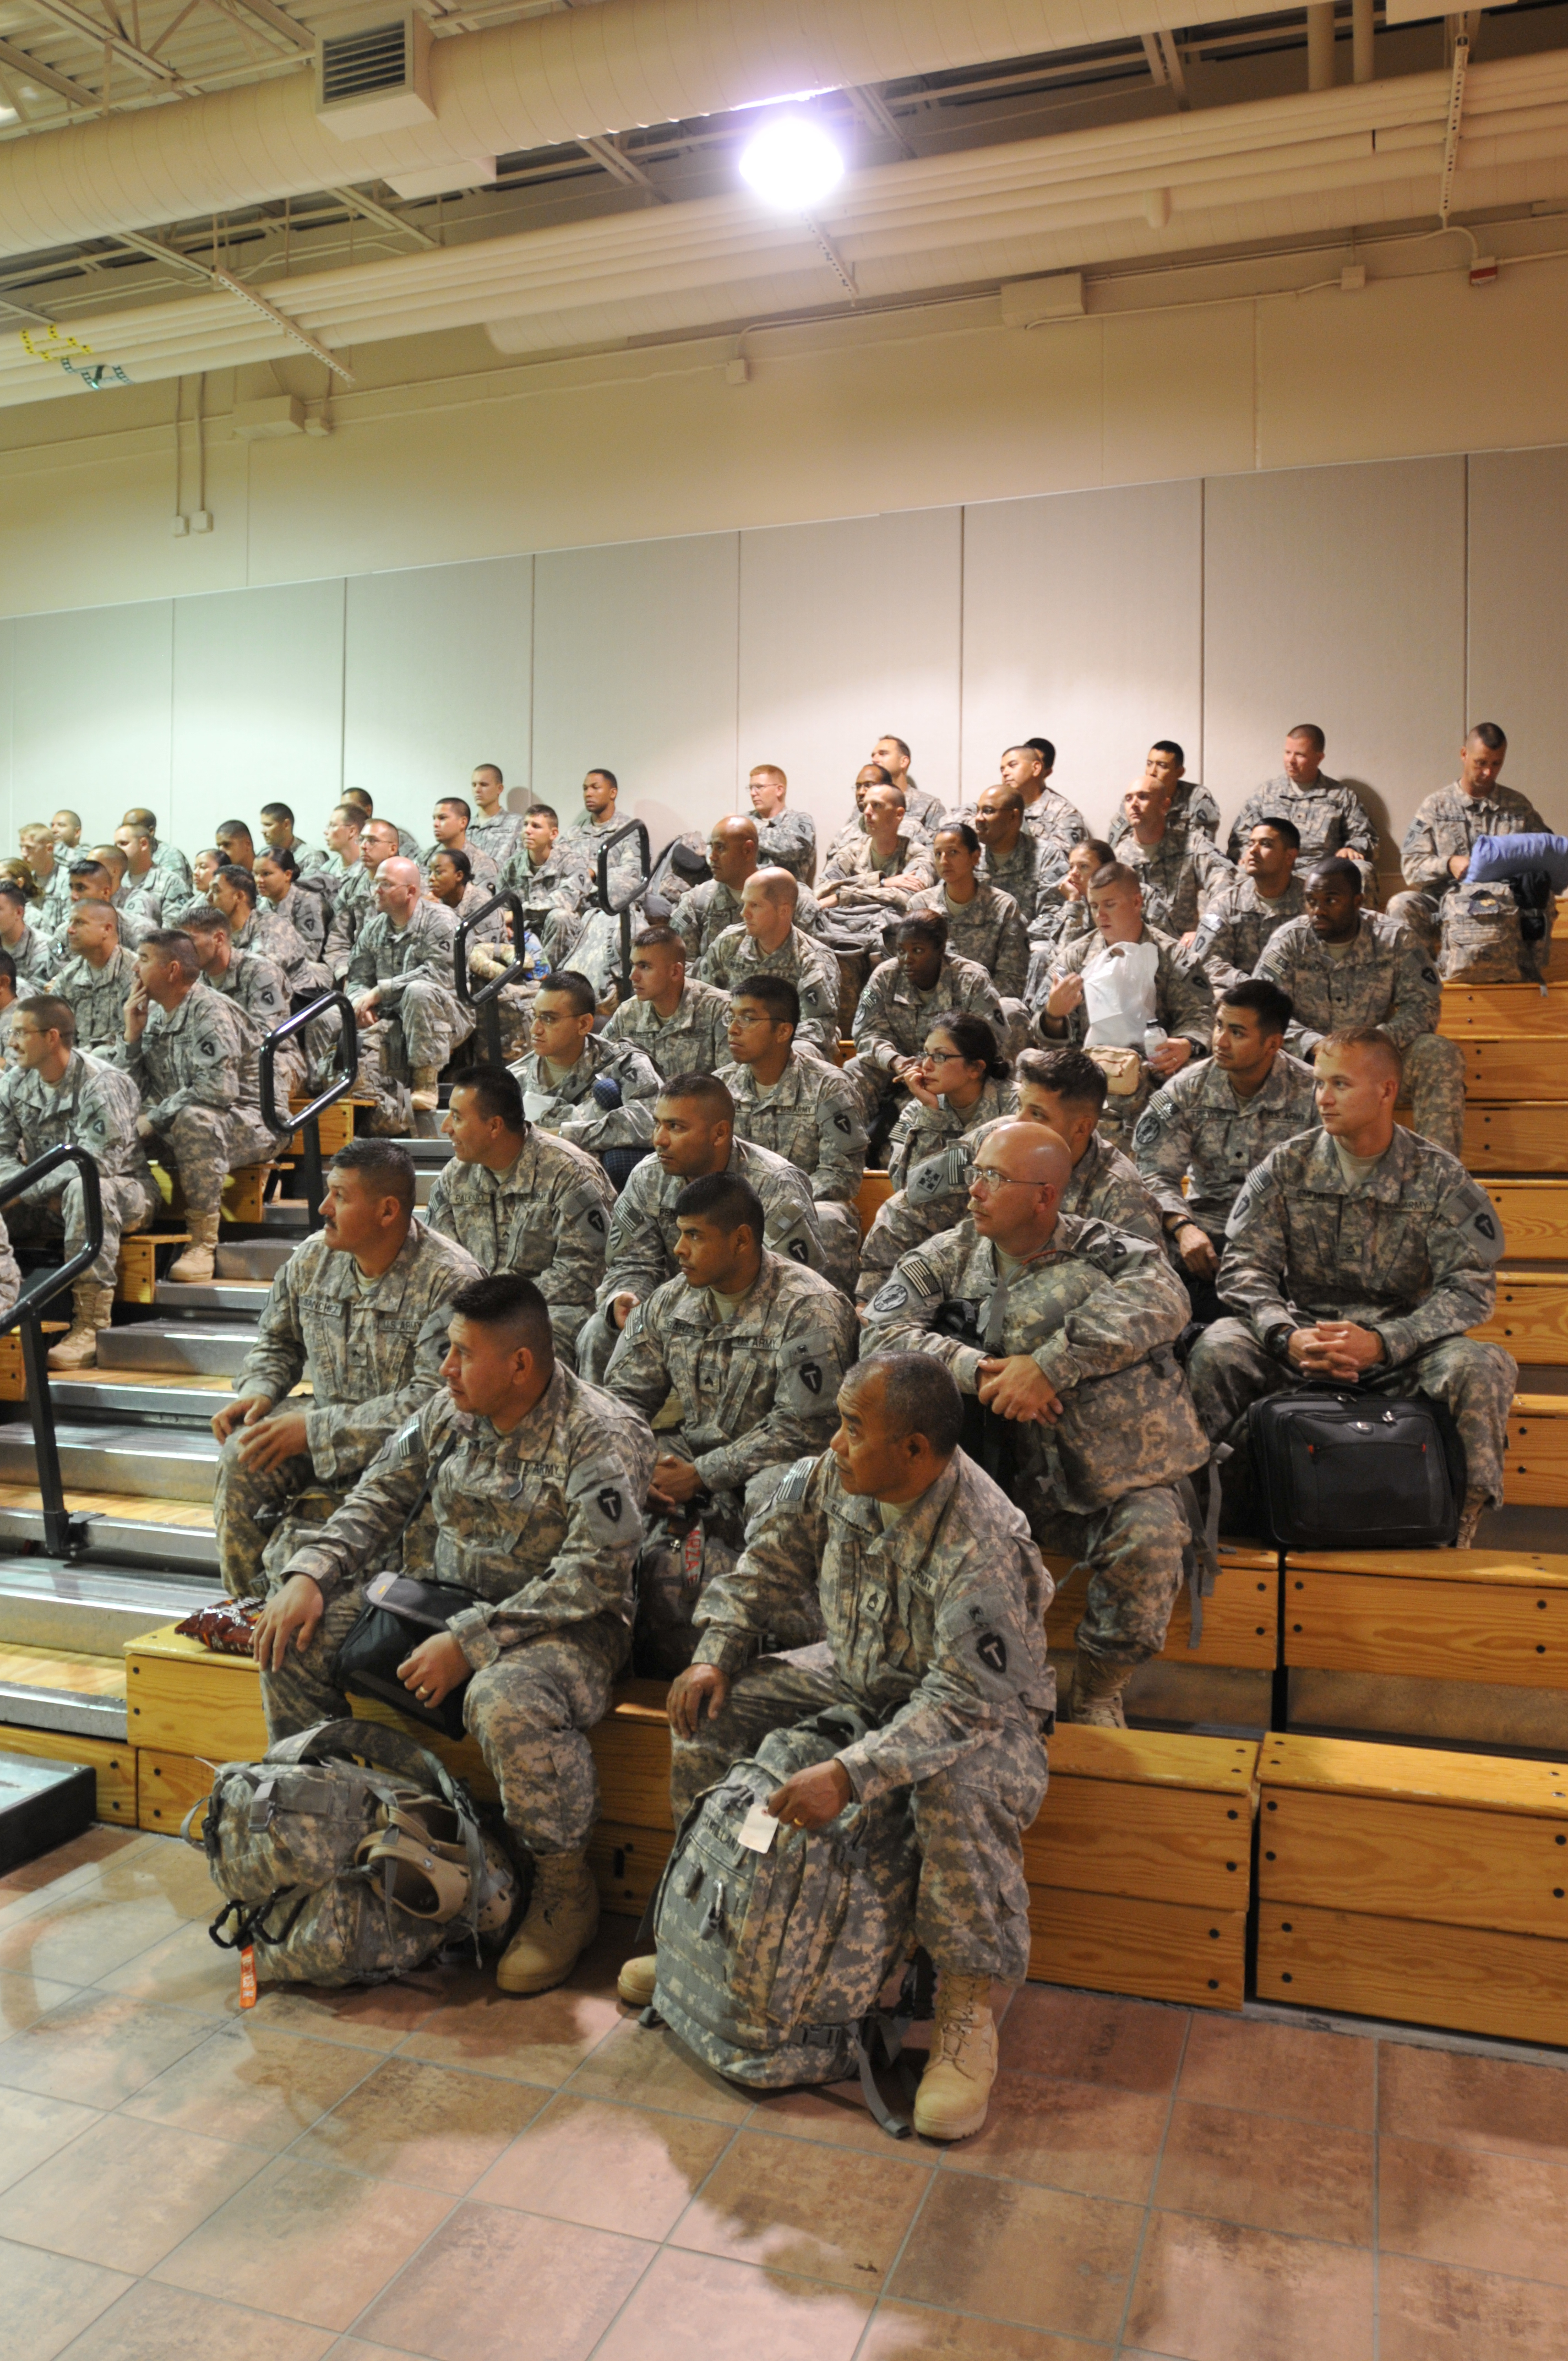 File:Echo Company 536th Arrive in Fort Bliss after Iraq